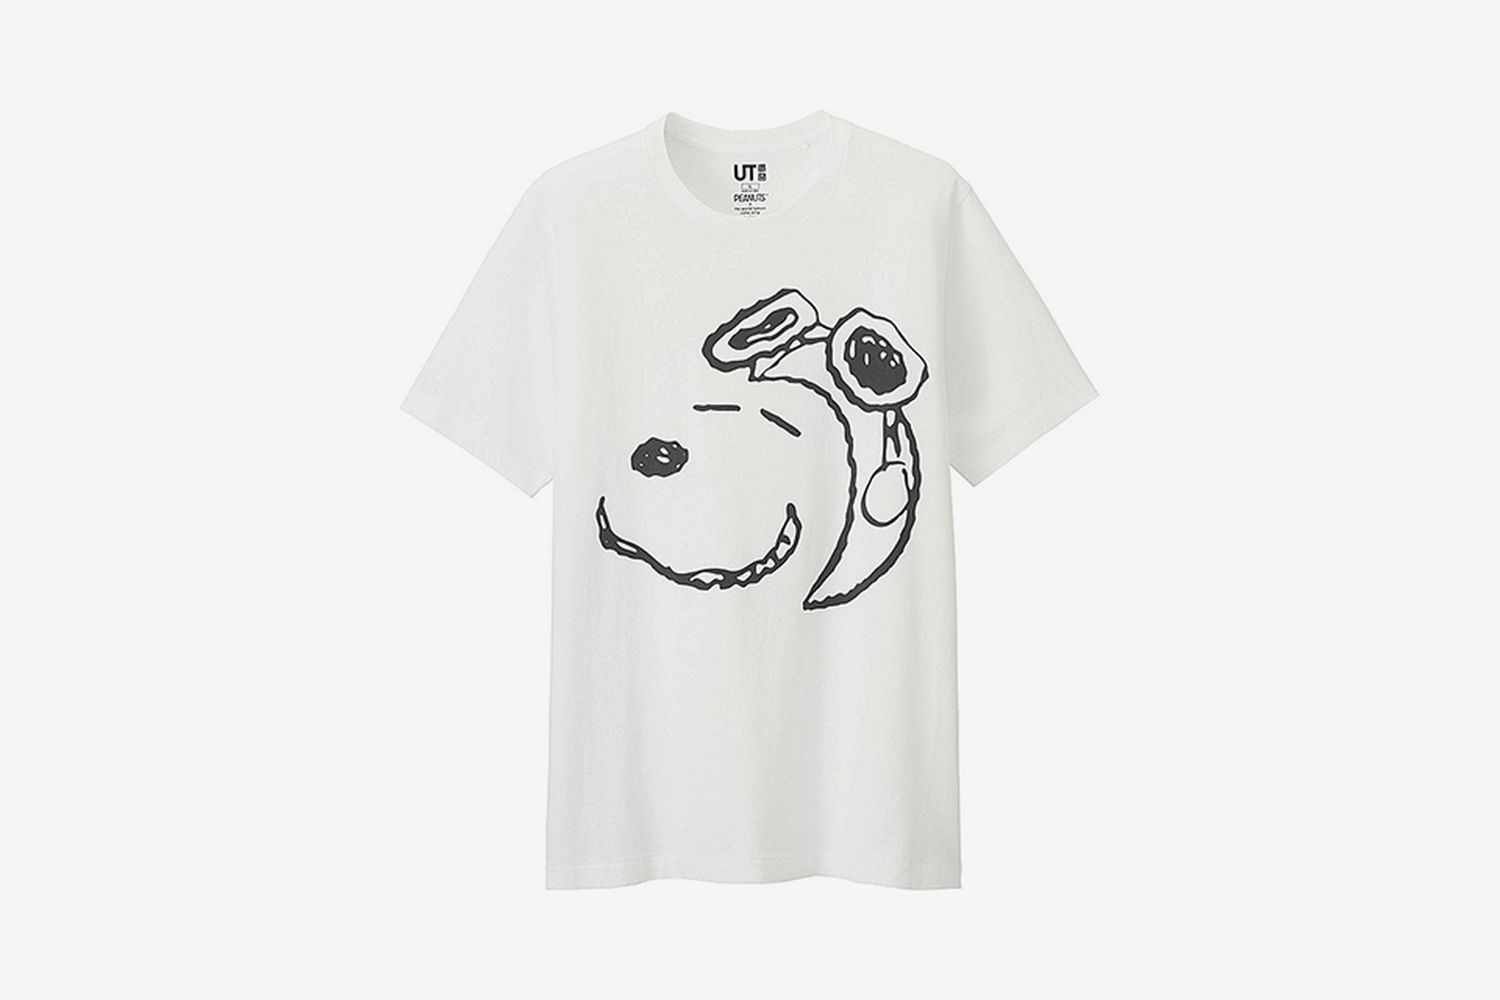 Peanuts Short-Sleeve Graphic T-Shirt